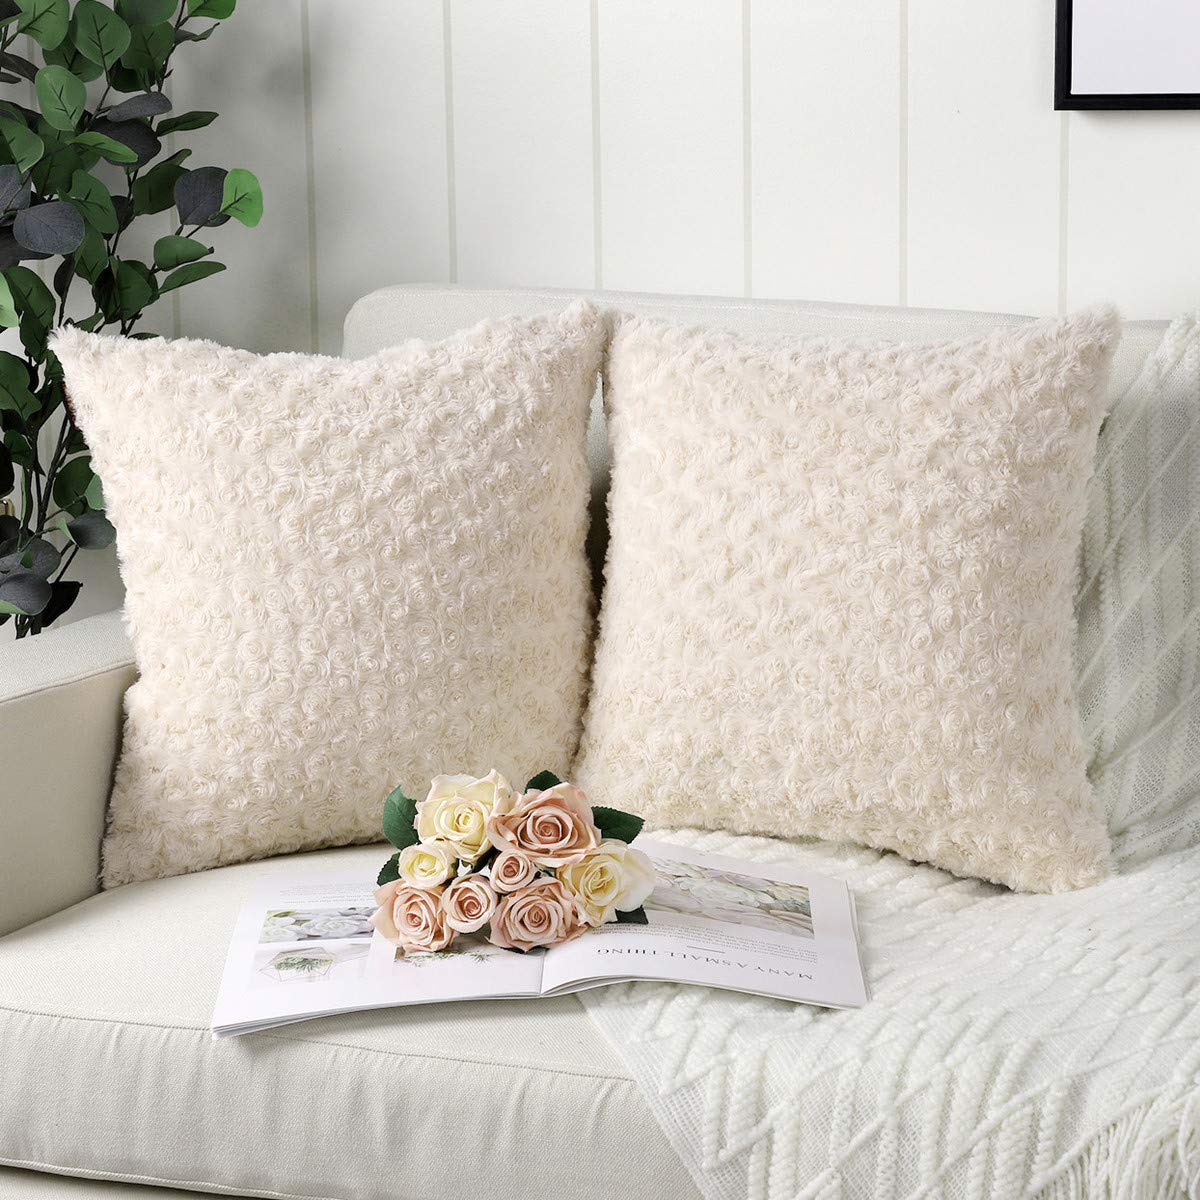 Mandioo Pack of 2 Beige Faux Fur 3D Flower Pattern Fuzzy Cozy Soft Decorative Throw Pillow Covers Set Cushion Cases Pillowcases for Couch Sofa Bedroom Car 24x24 Inches